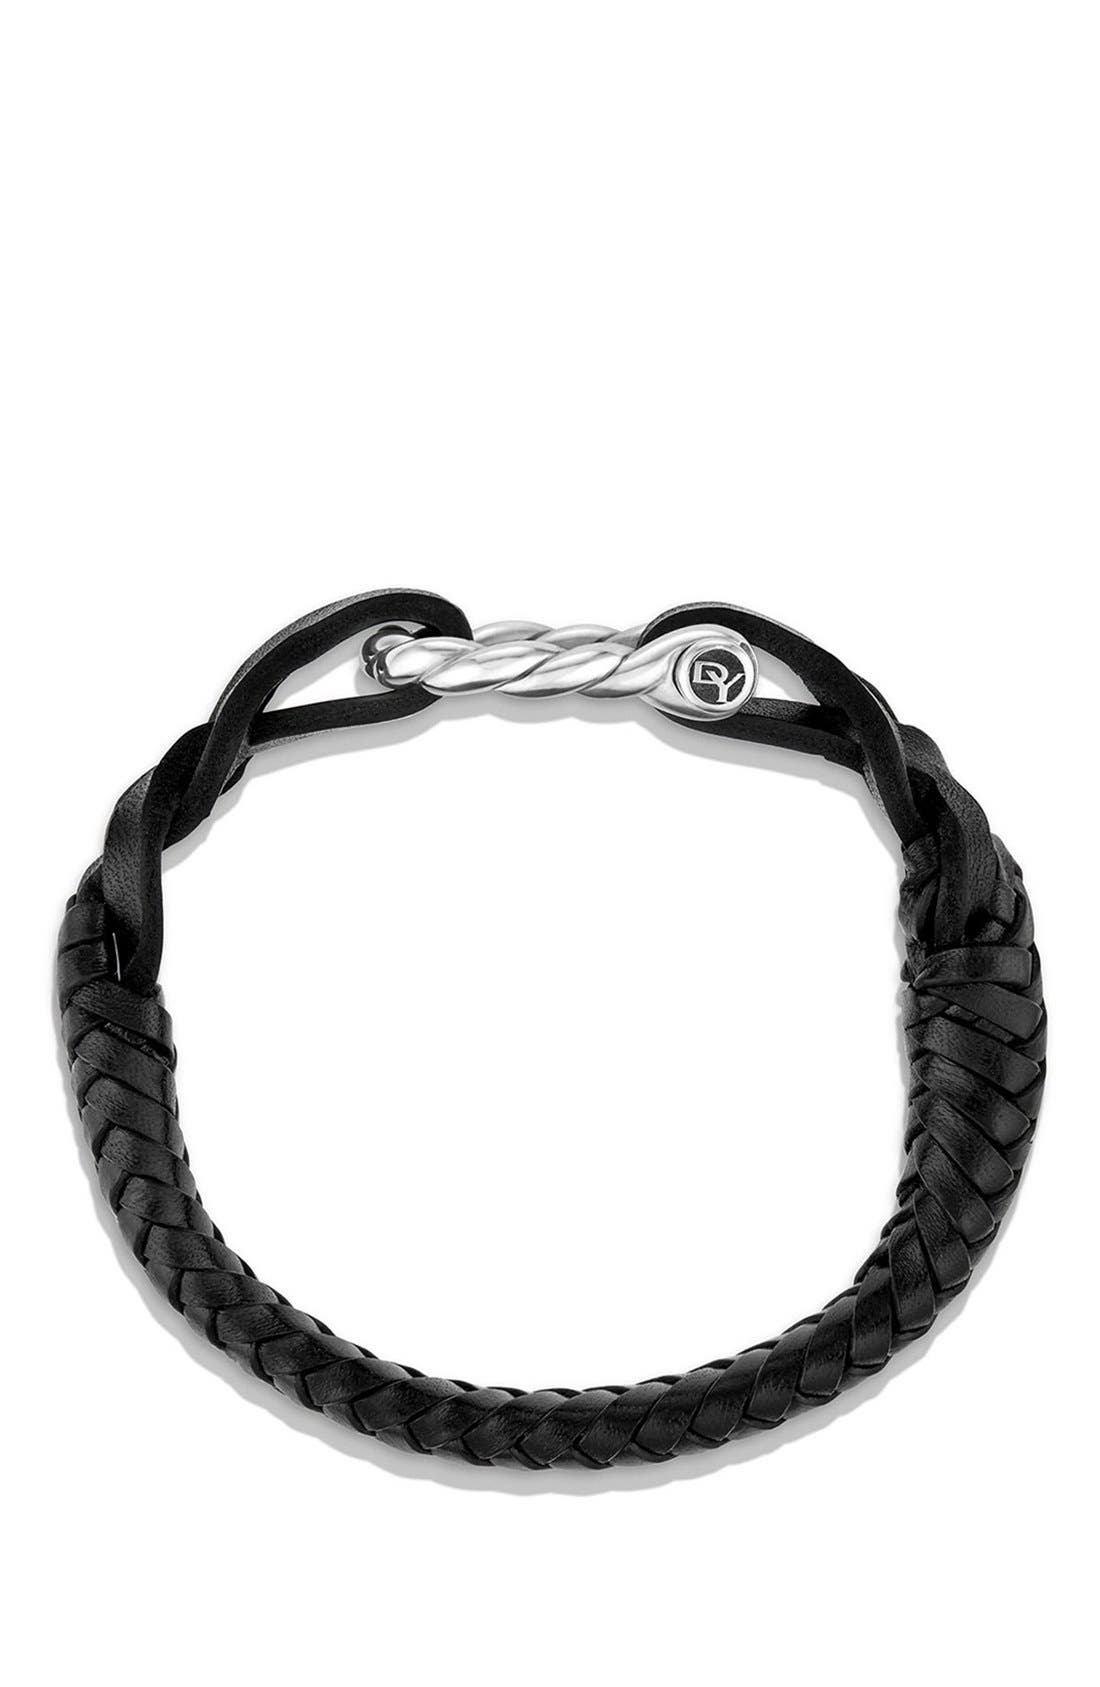 'Maritime' Leather Woven Shackle Bracelet,                             Alternate thumbnail 3, color,                             SILVER/ BLACK